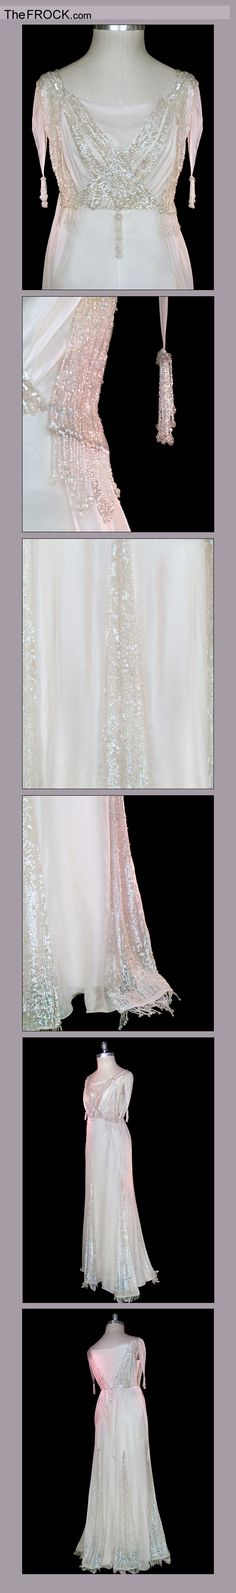 Gorgeous original 1910 beaded and sequin trimmed silk chiffon wedding dress. Love it!